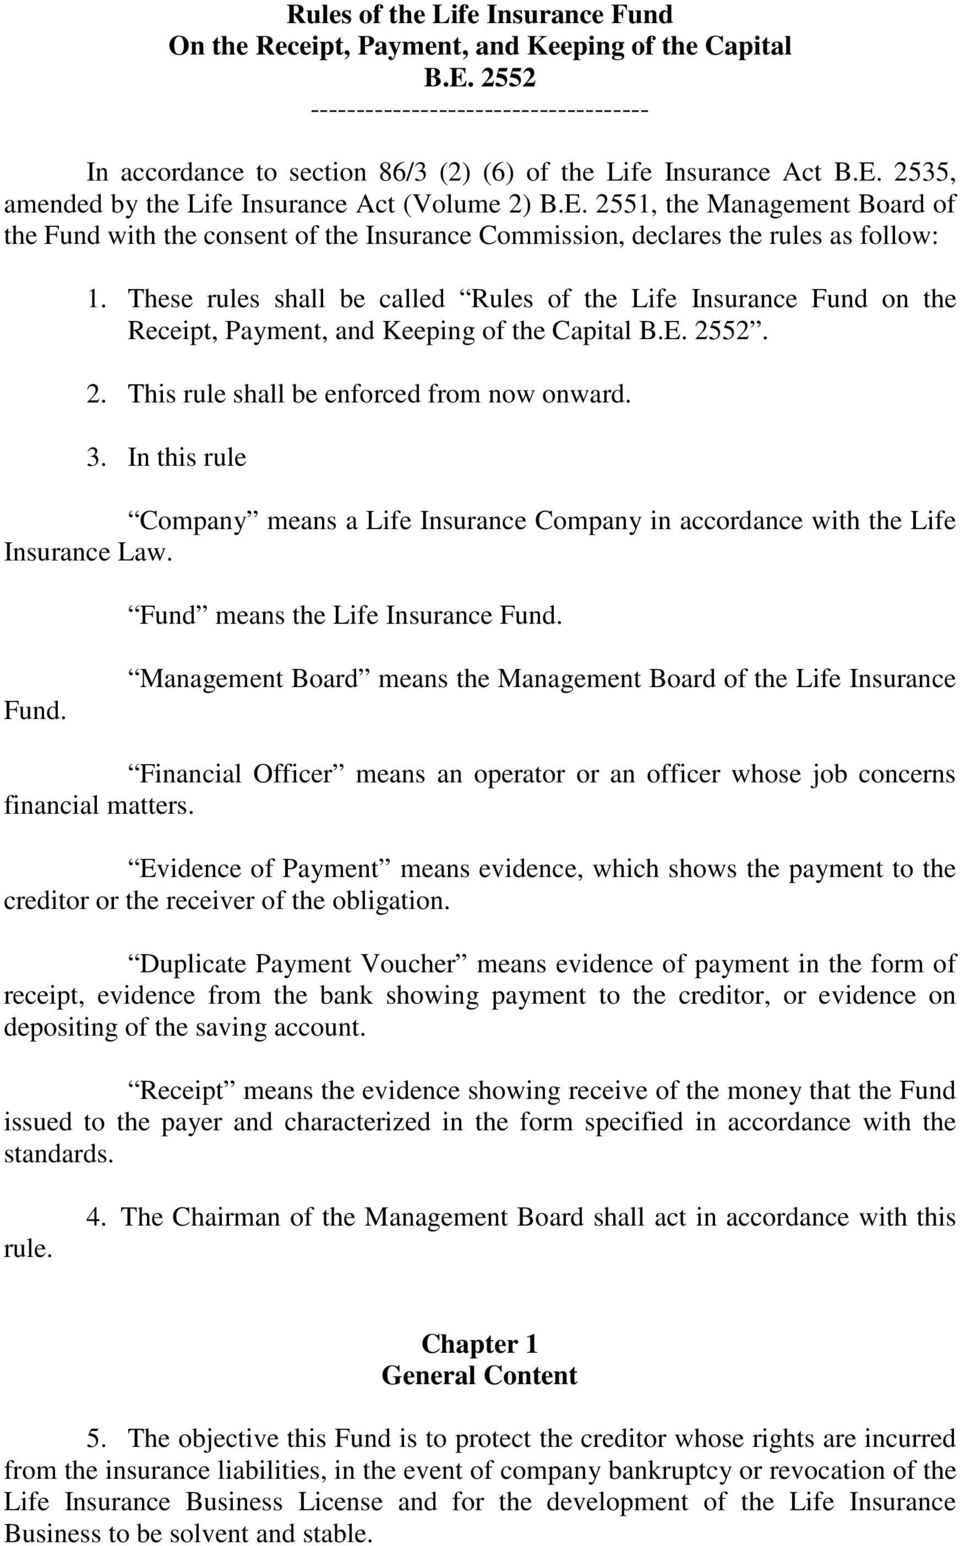 These rules shall be called Rules of the Life Insurance Fund on the Receipt, Payment, and Keeping of the Capital B.E. 2552. 2. This rule shall be enforced from now onward. 3.